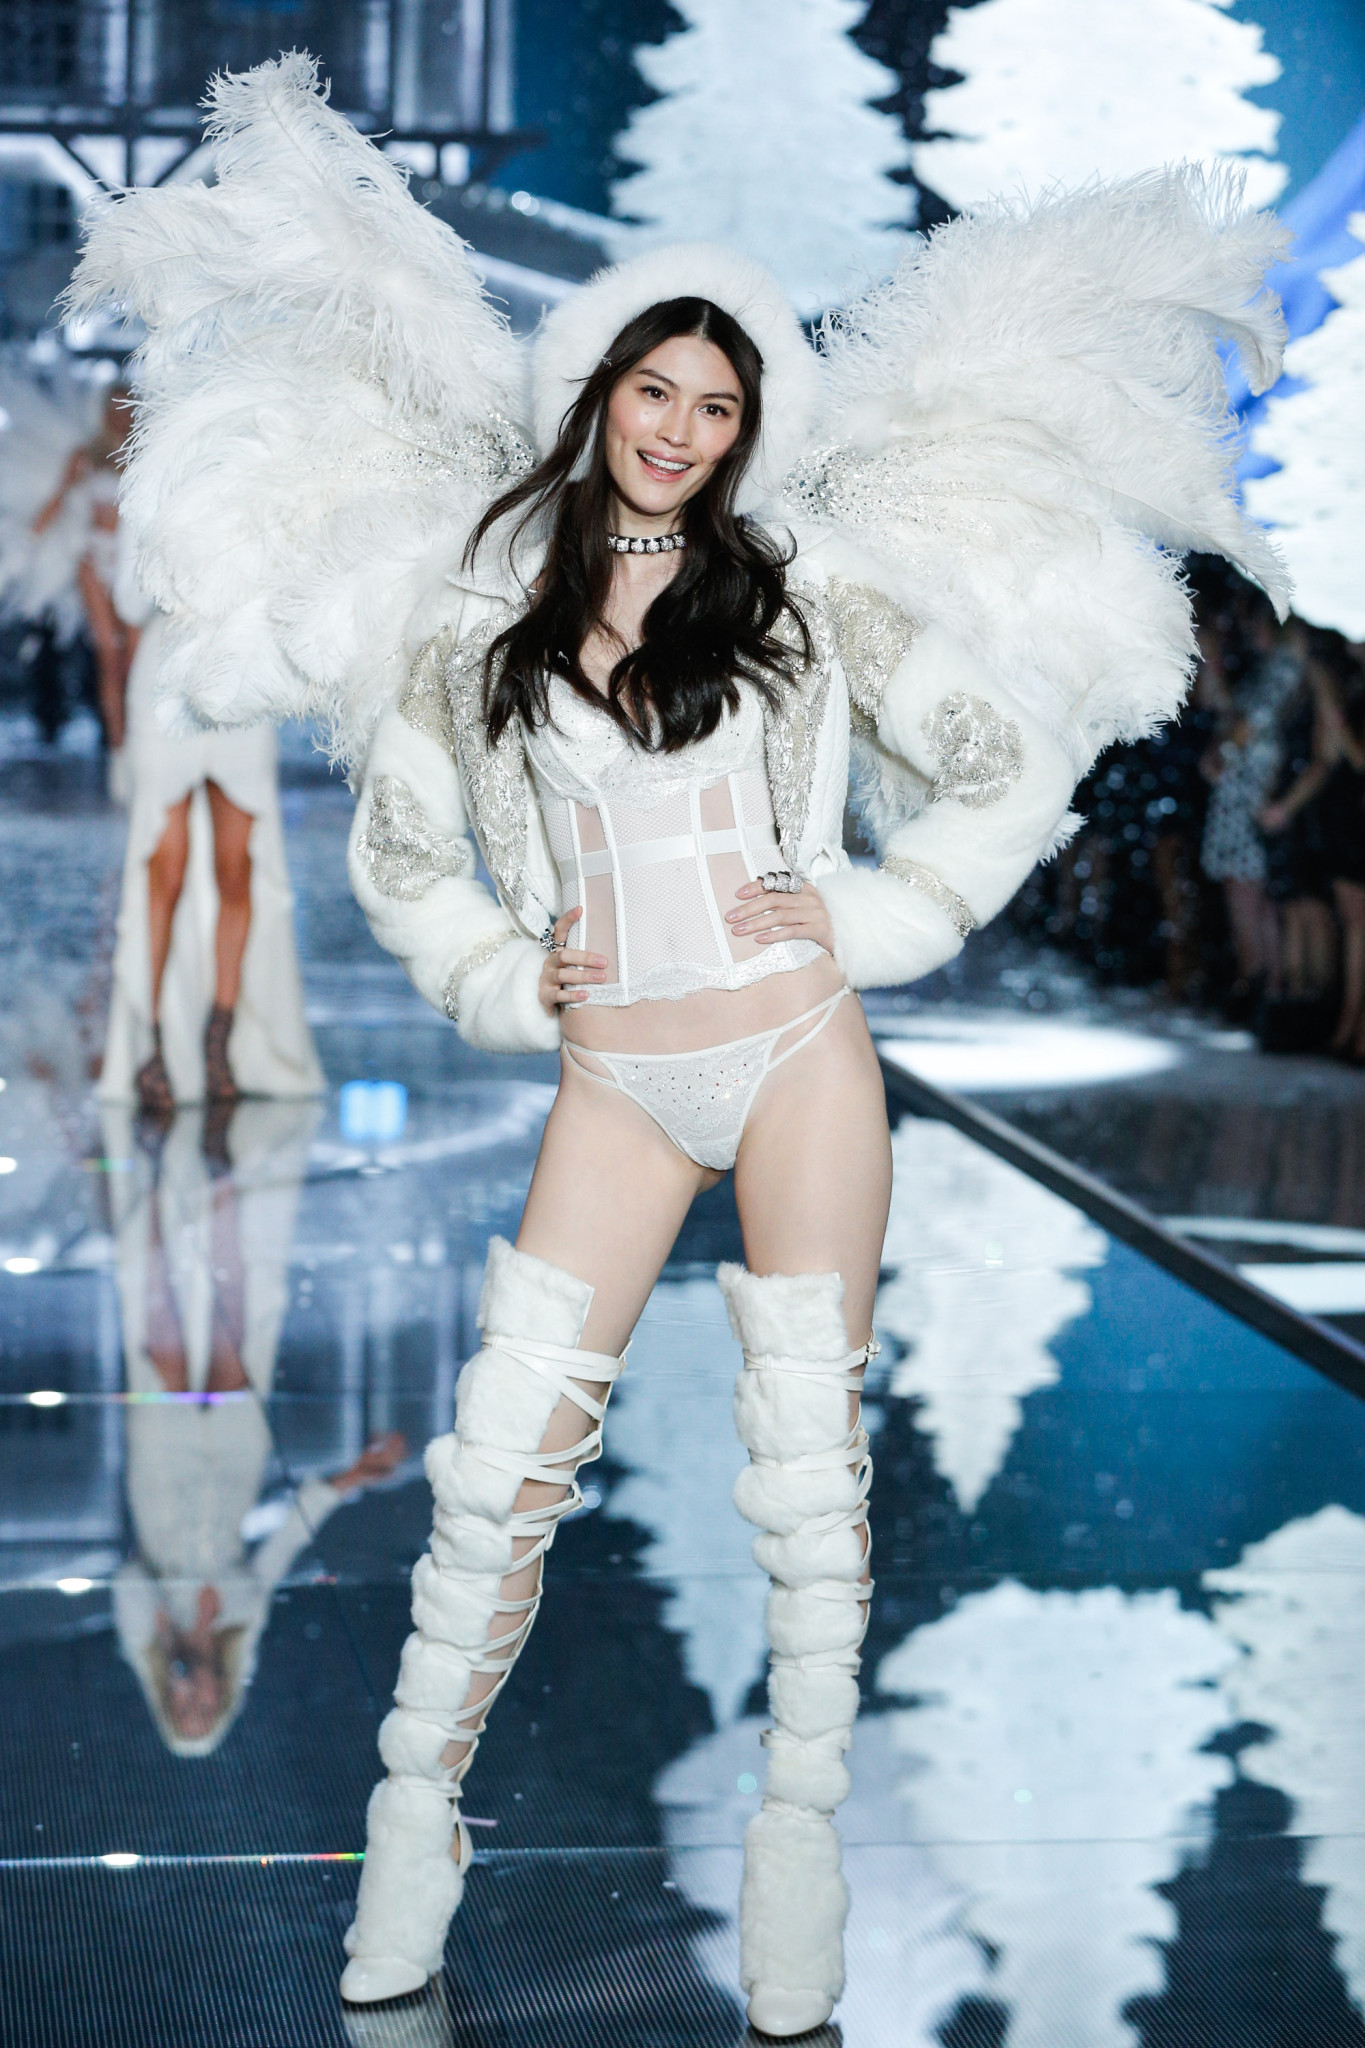 Sui He walks the runway at the 2015 Victoria's Secret Fashion Show in New York City on November 10th, 2015